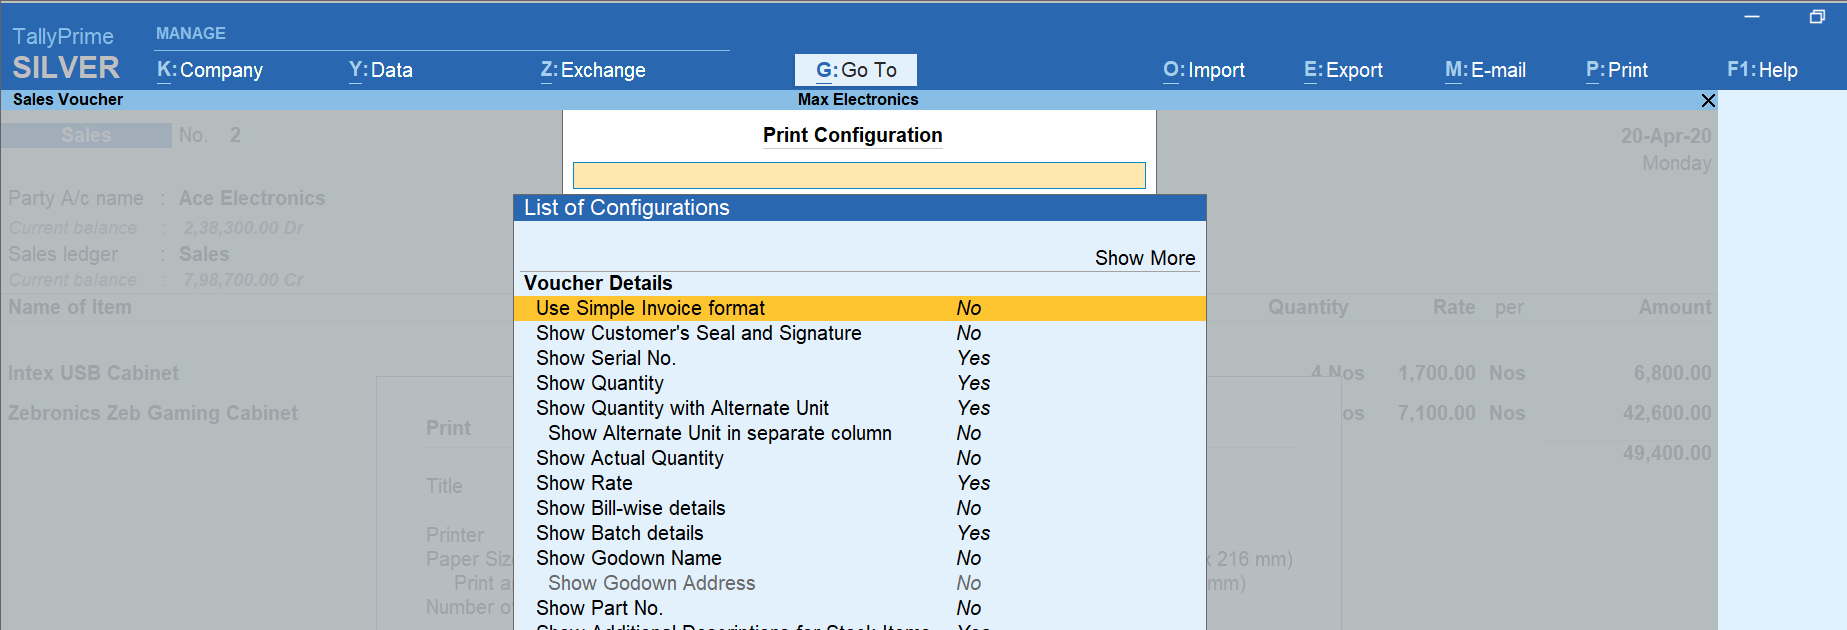 invoice configurations and options in TallyPrime